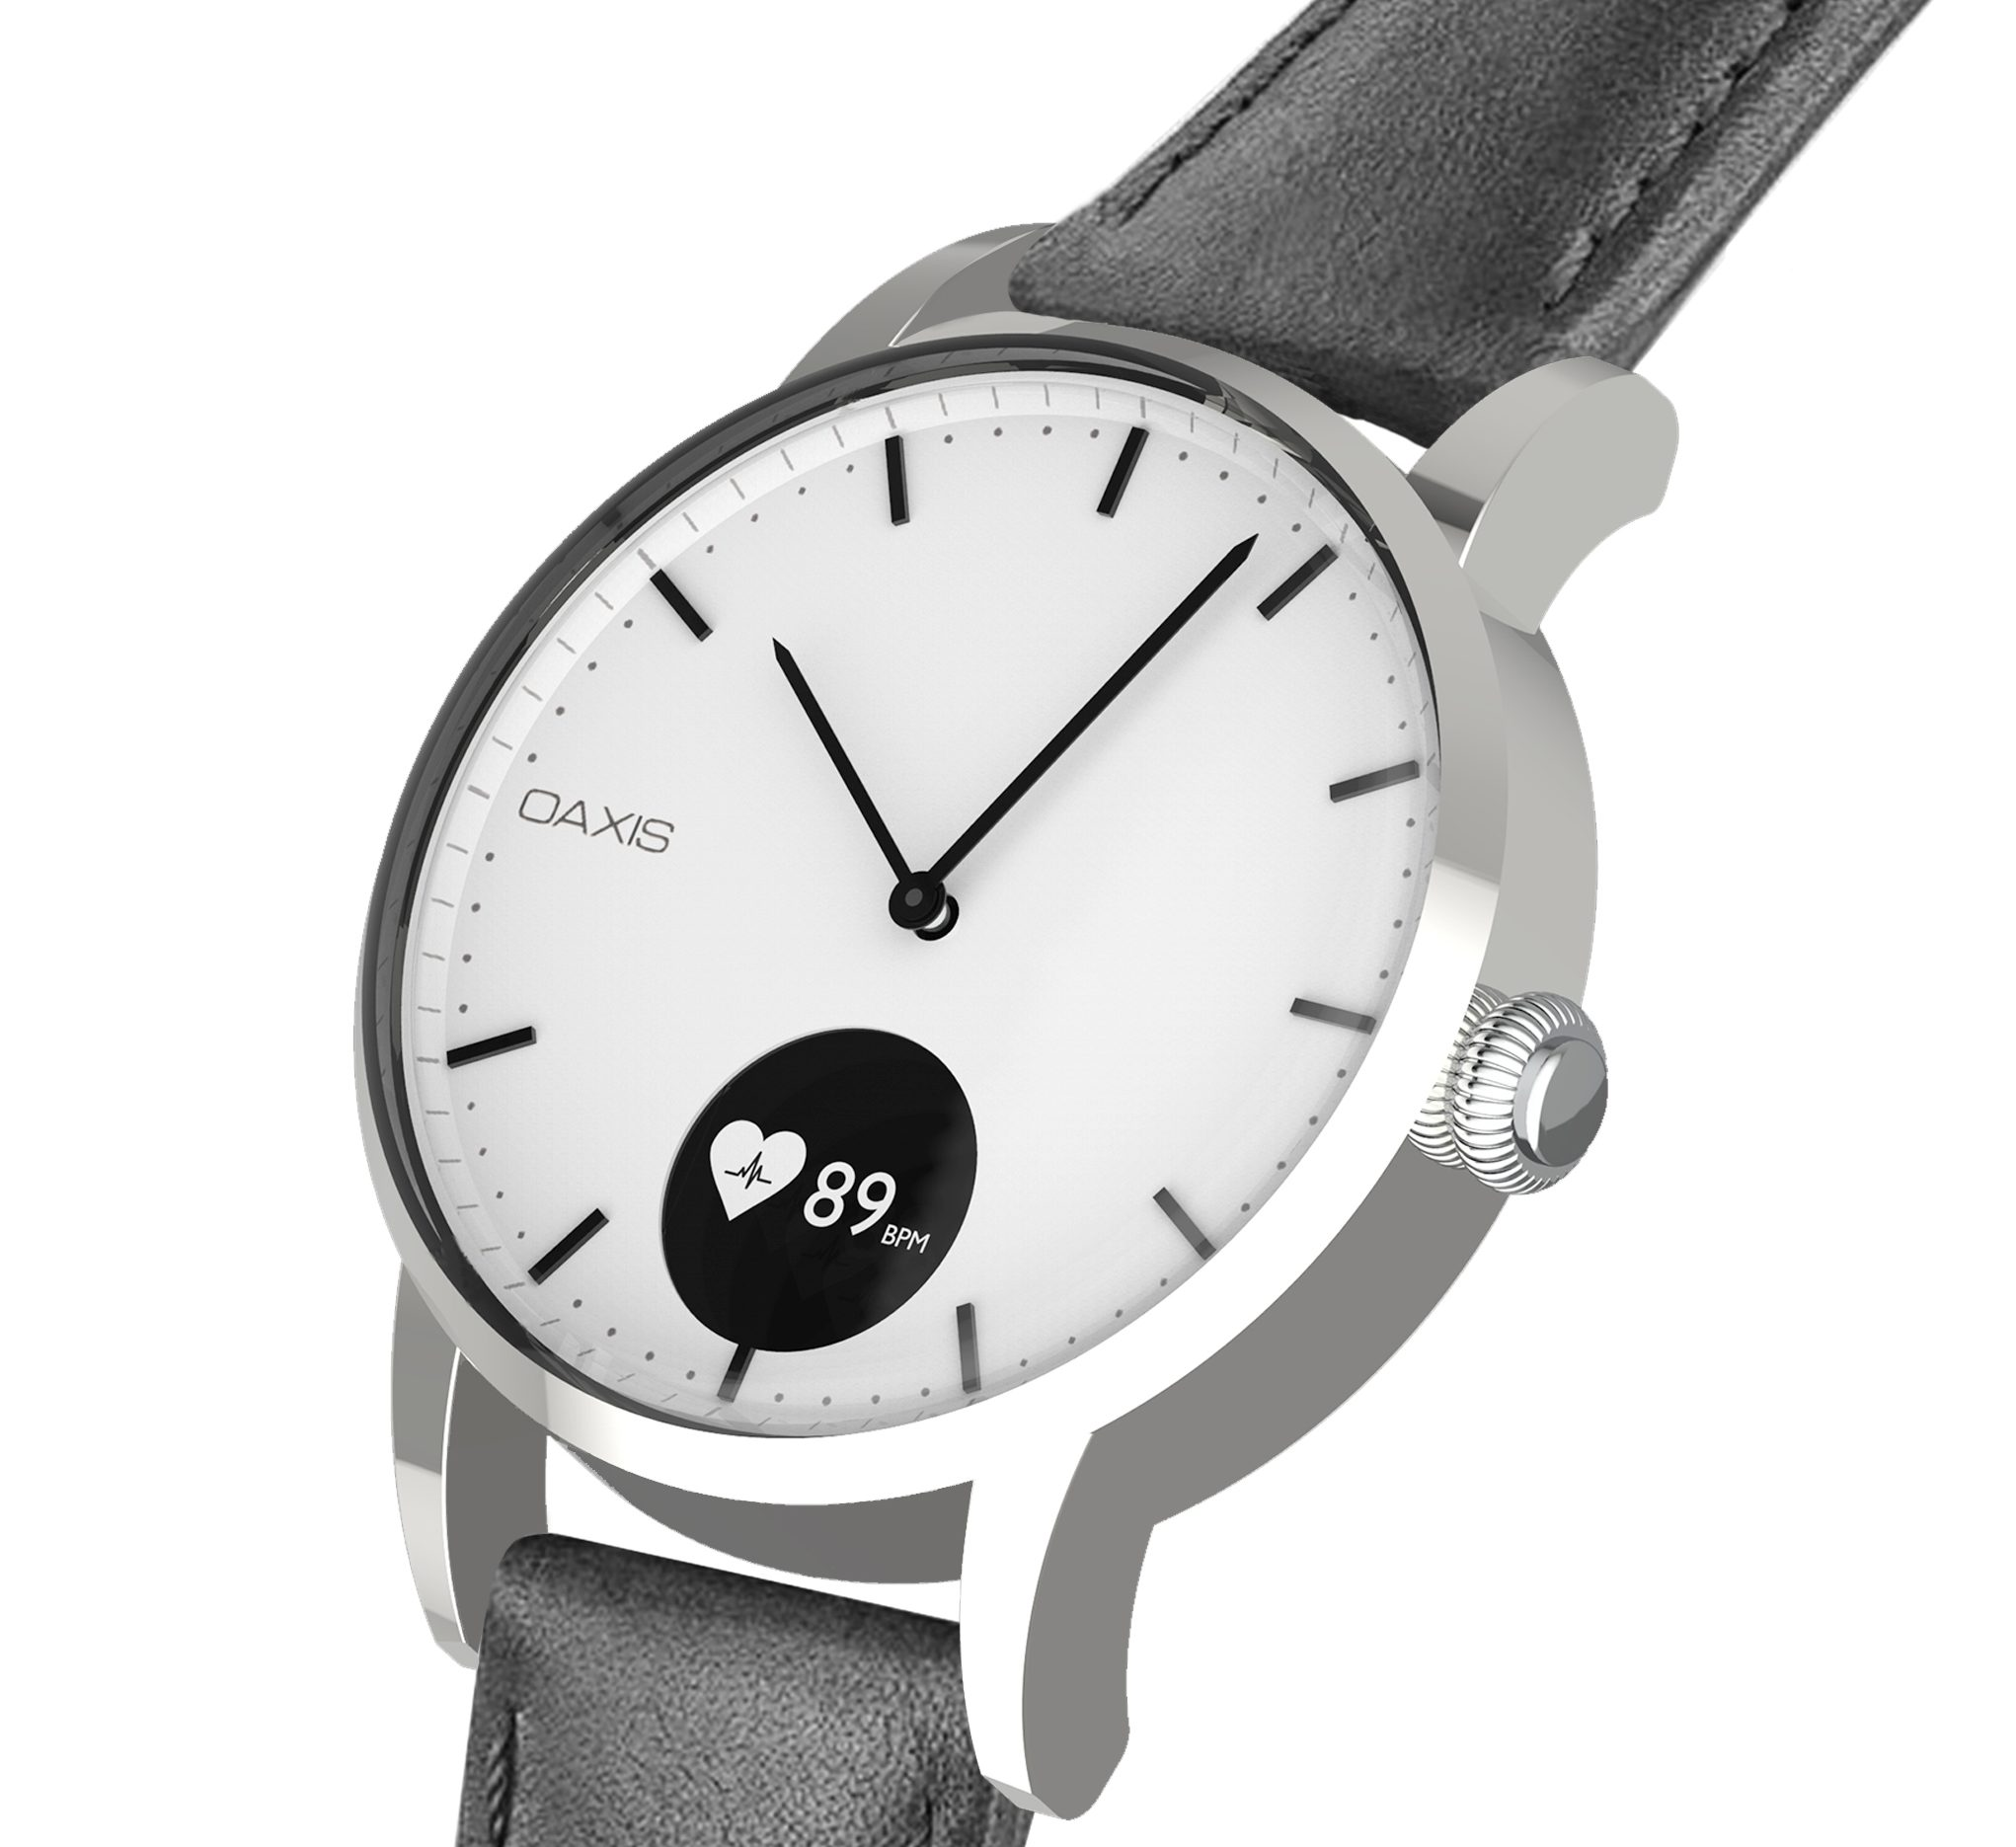 aeec974eb Oaxis brings Timepiece, a minimalist analogue watch with heart rate monitor  to Kickstarter